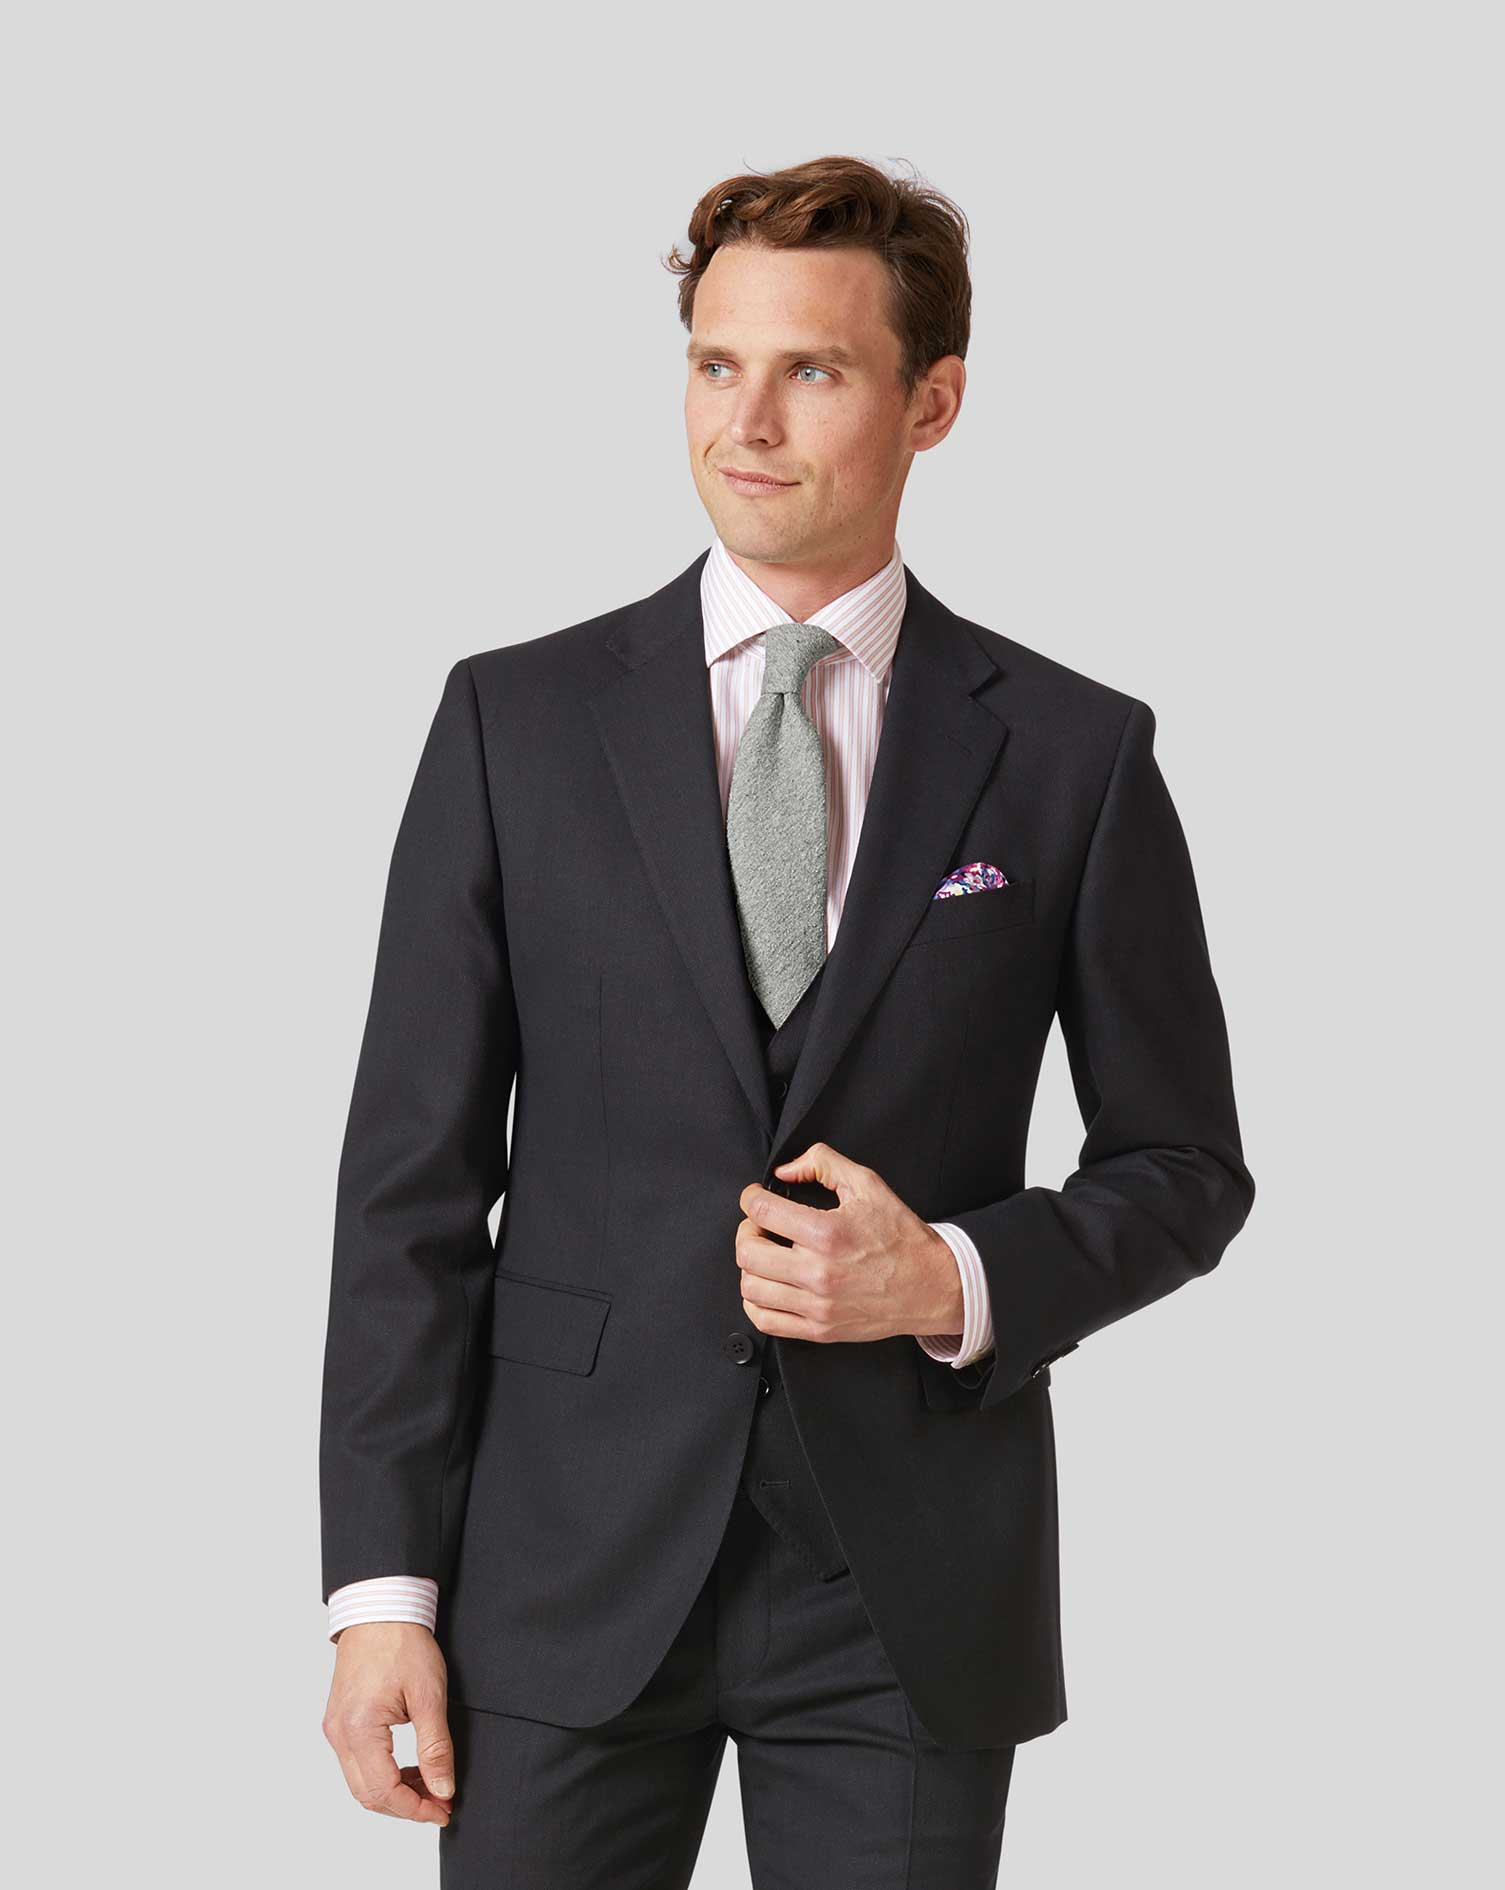 Image of Charles Tyrwhitt Birdseye Travel Suit Wool Jacket - Charcoal Size 36R Regular by Charles Tyrwhitt